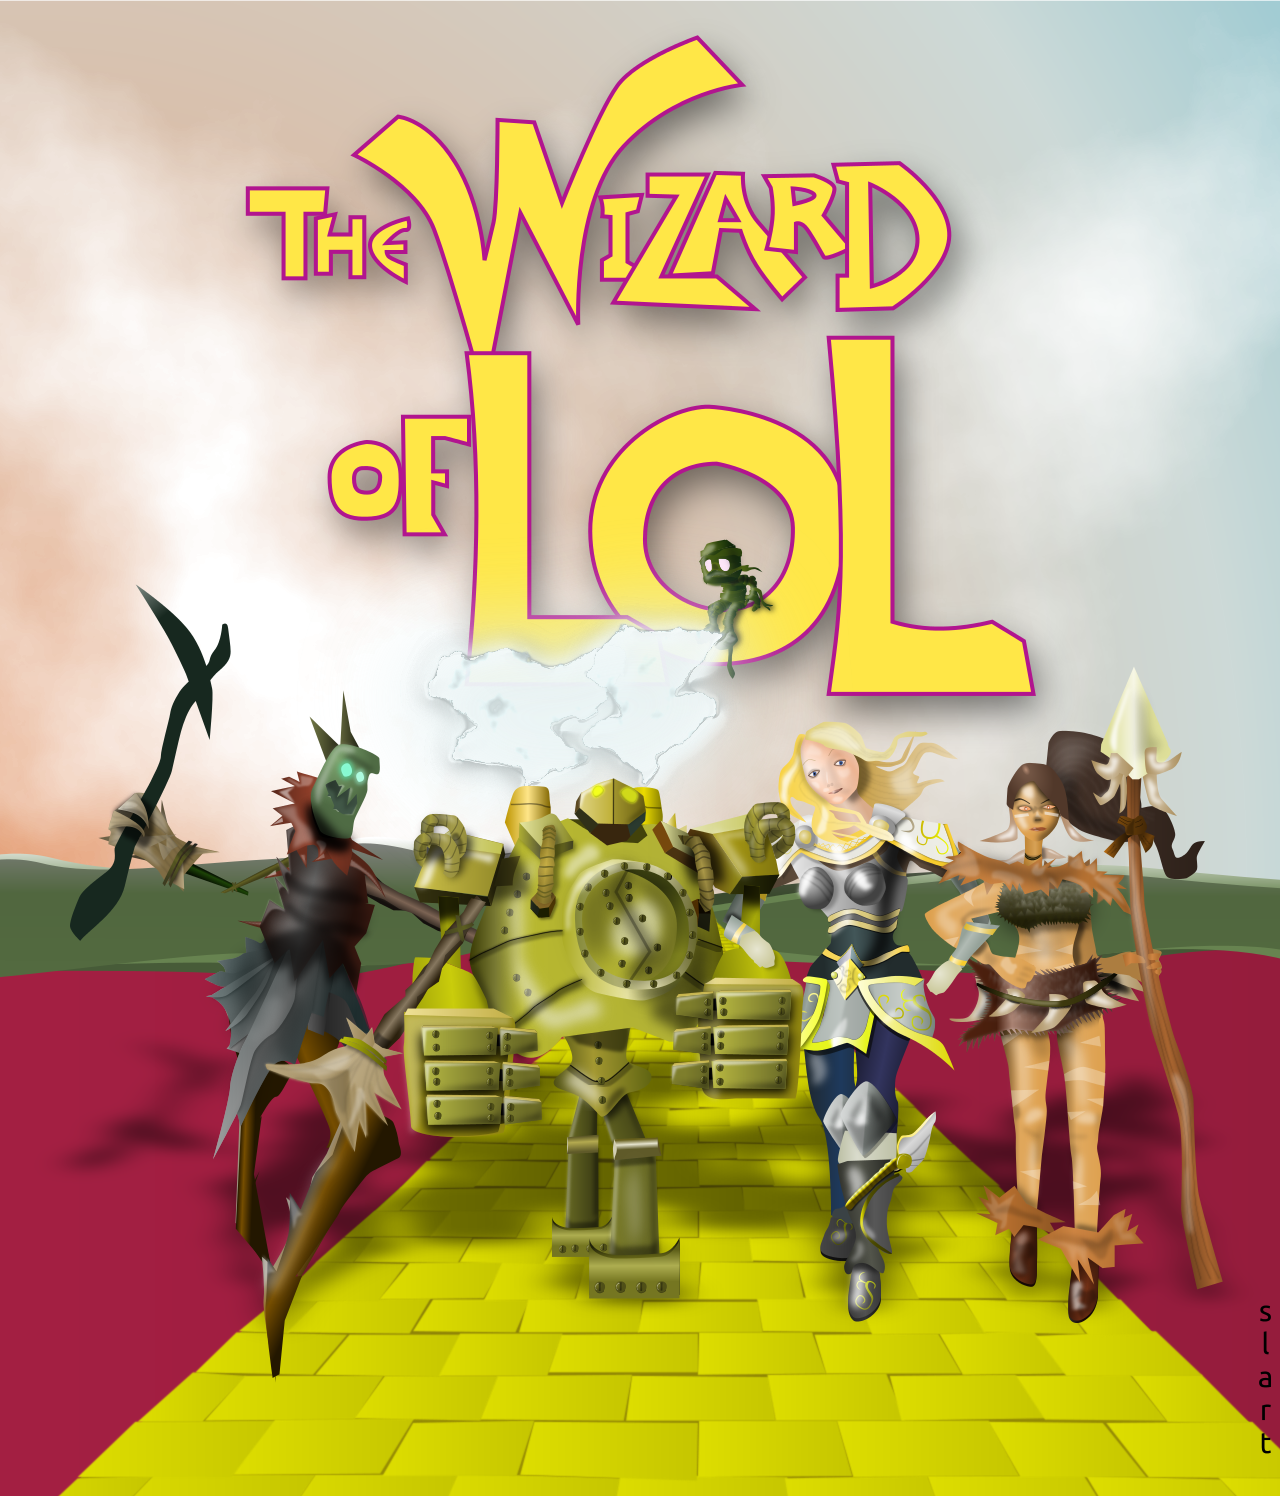 The Wizard of LoL by slart